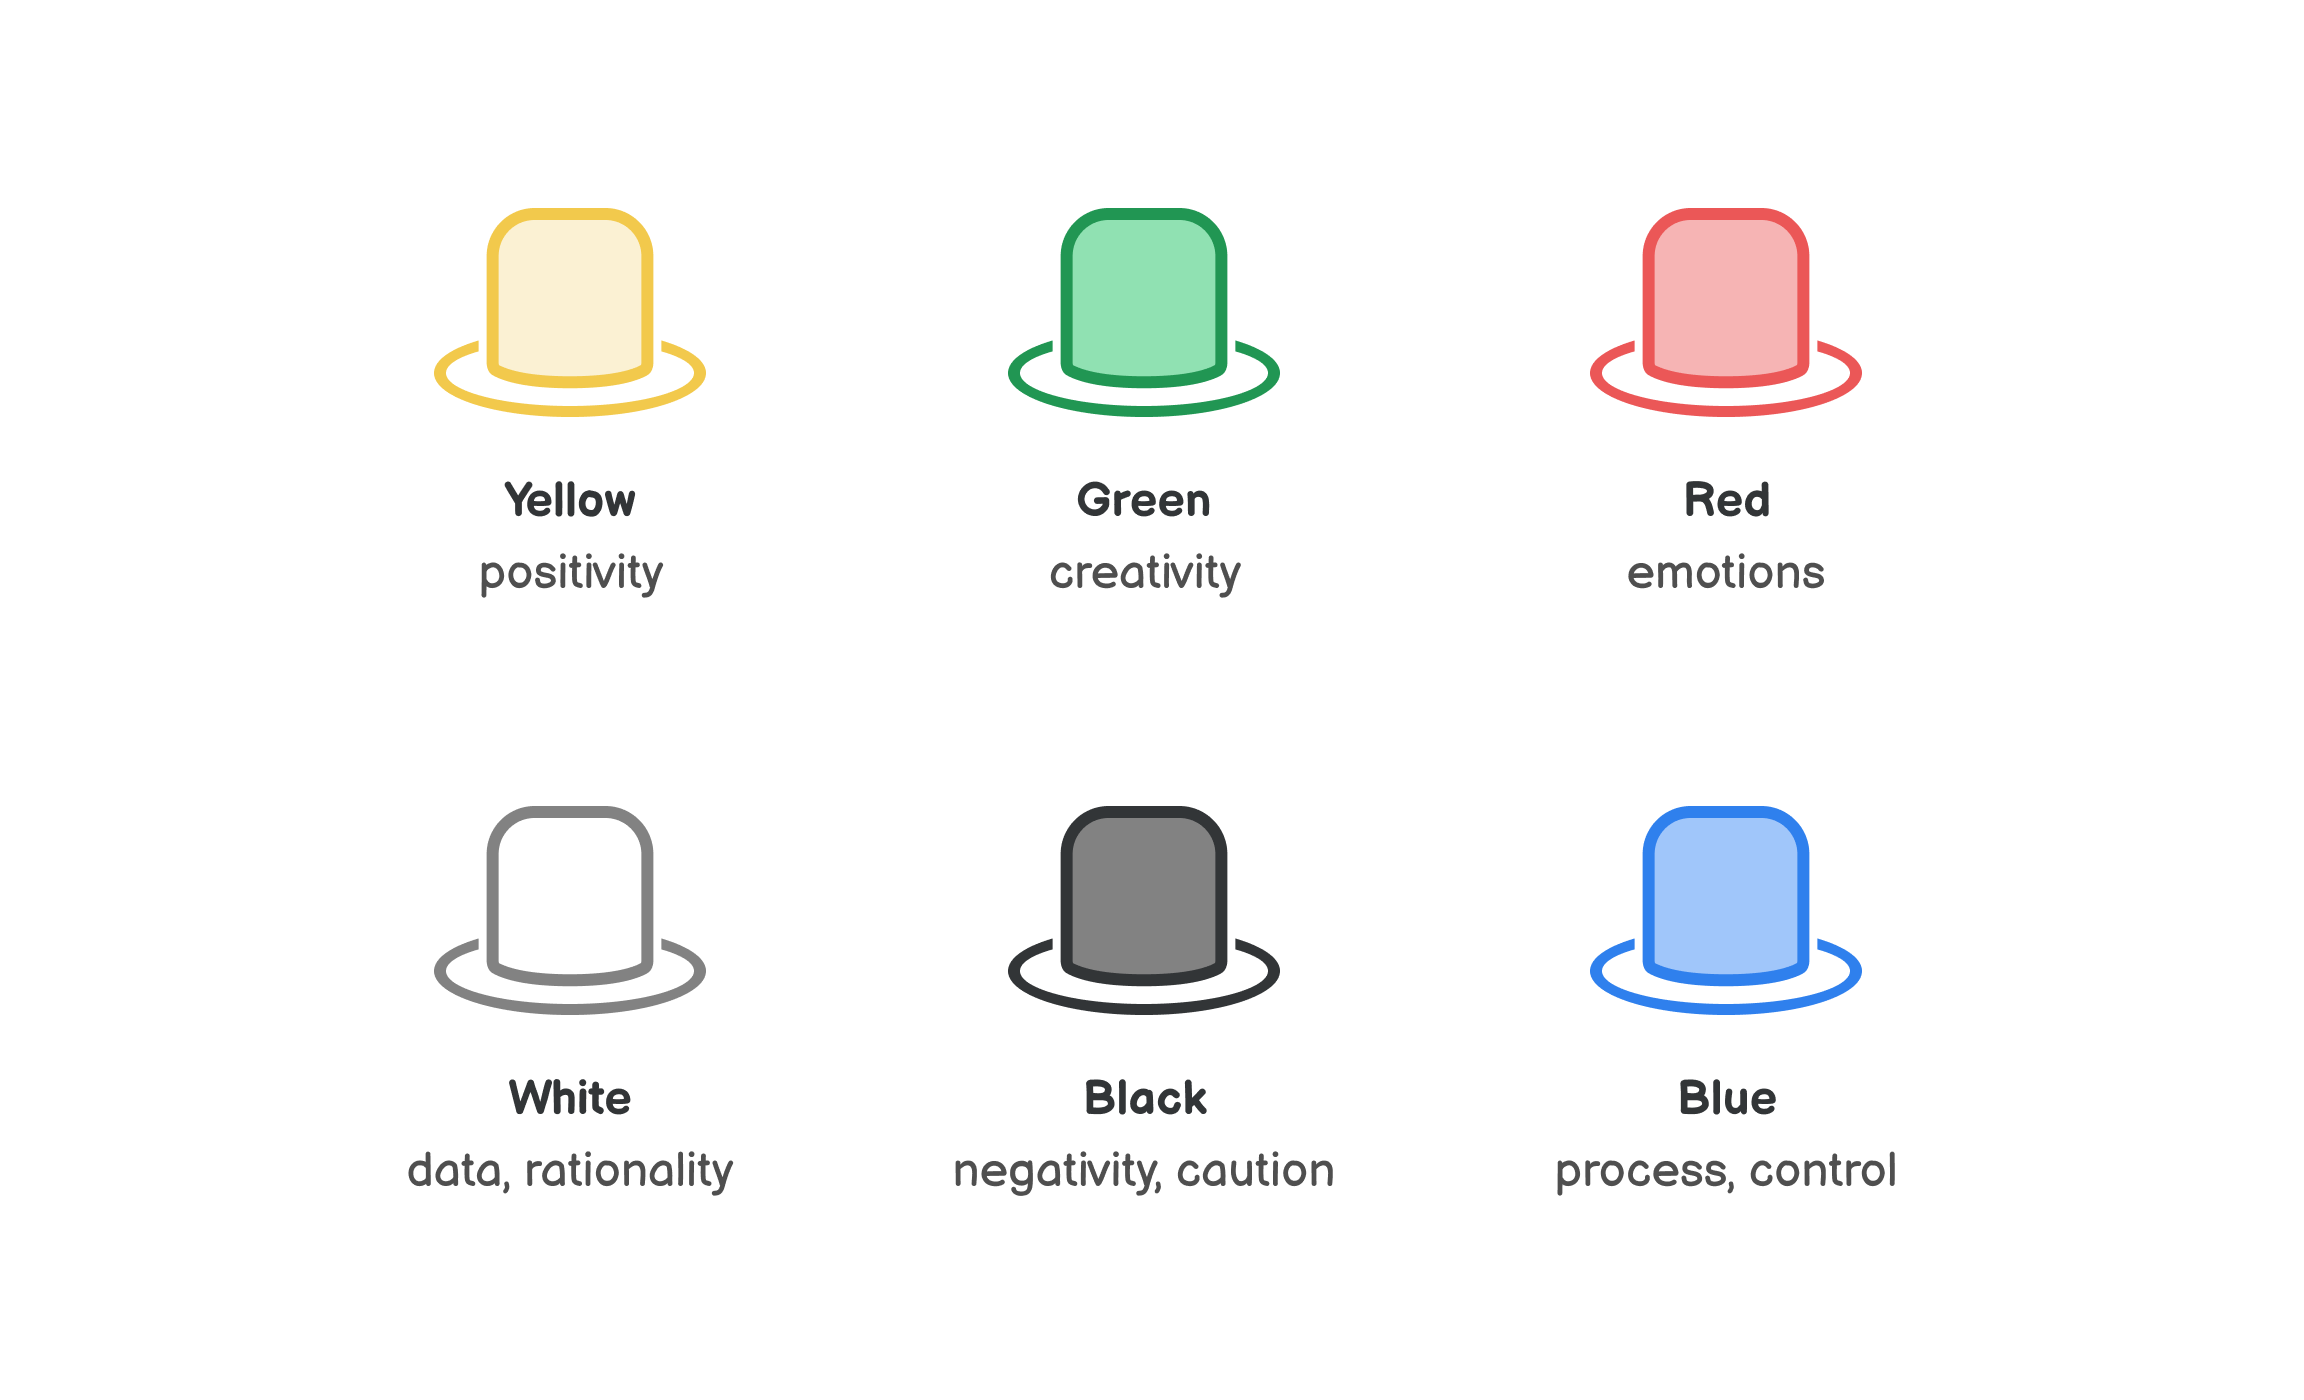 Illustration of the Six Thinking Hats: Yellow for positivity, Green for creativity, Red for emotions, White for data, Black for negativity and Blue for control.